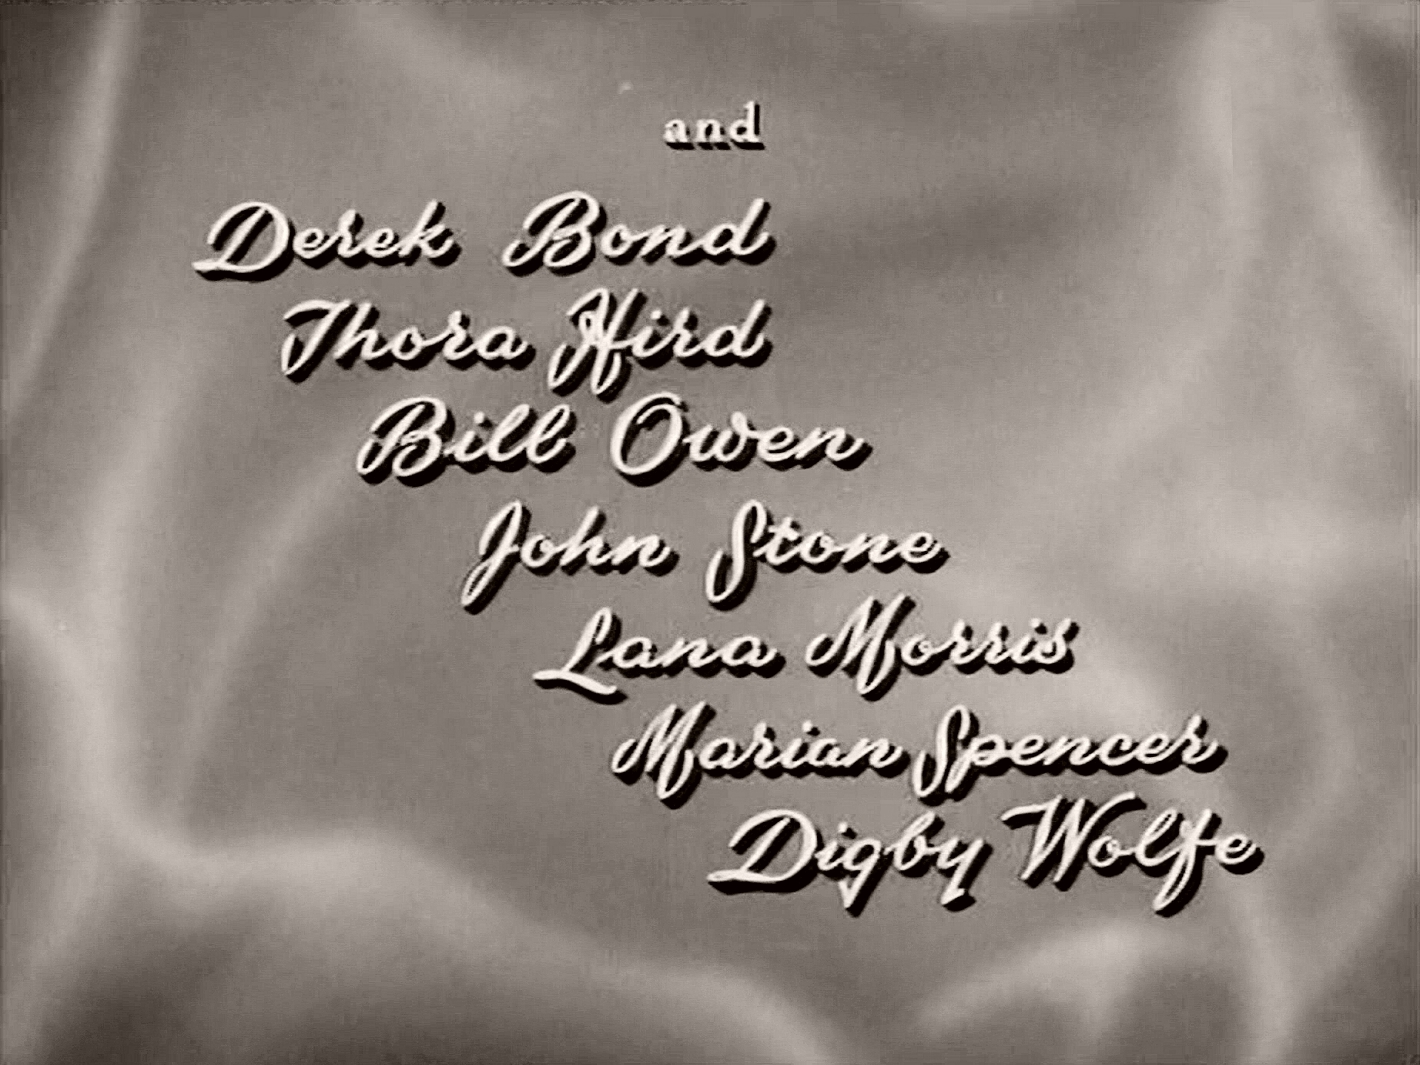 Main title from The Weaker Sex (1948) (6).  And Derek Bond Thora Hird, Bill Owen, John Stone, Lana Morris, Marian Spencer, Digby Wolfe